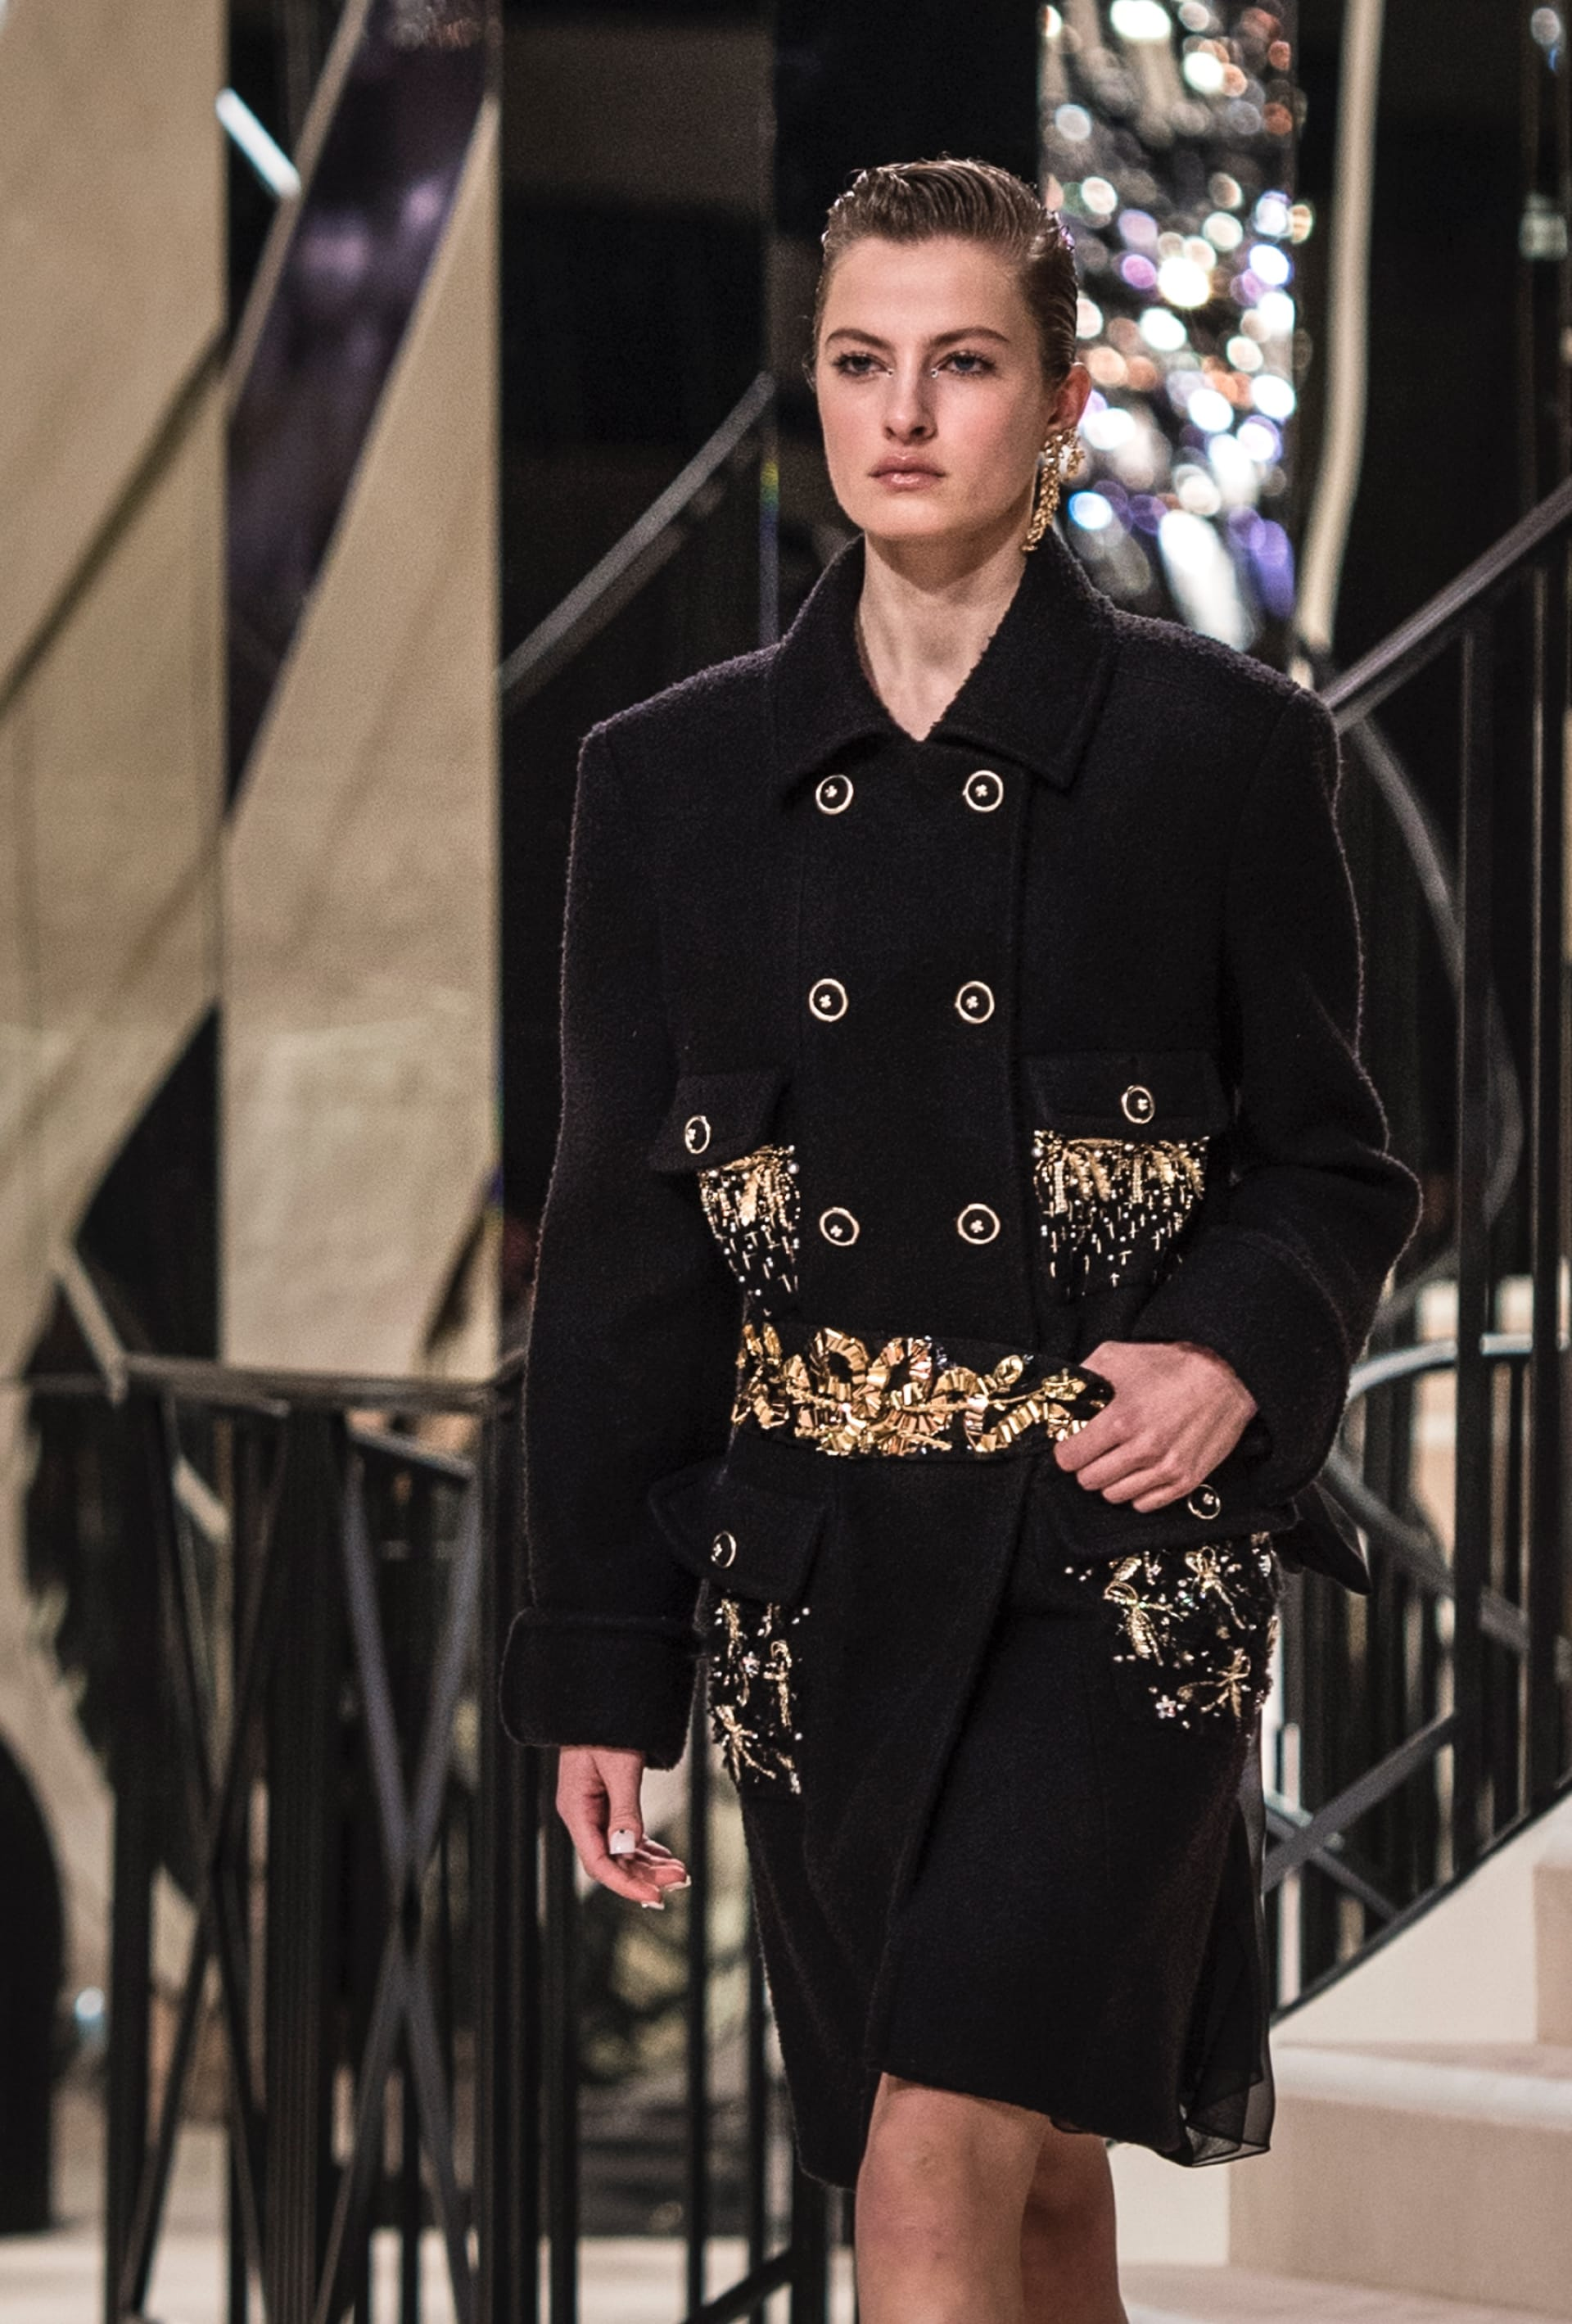 View 5 - Look 4 - Métiers d'Art 2019/20 - see full sized version